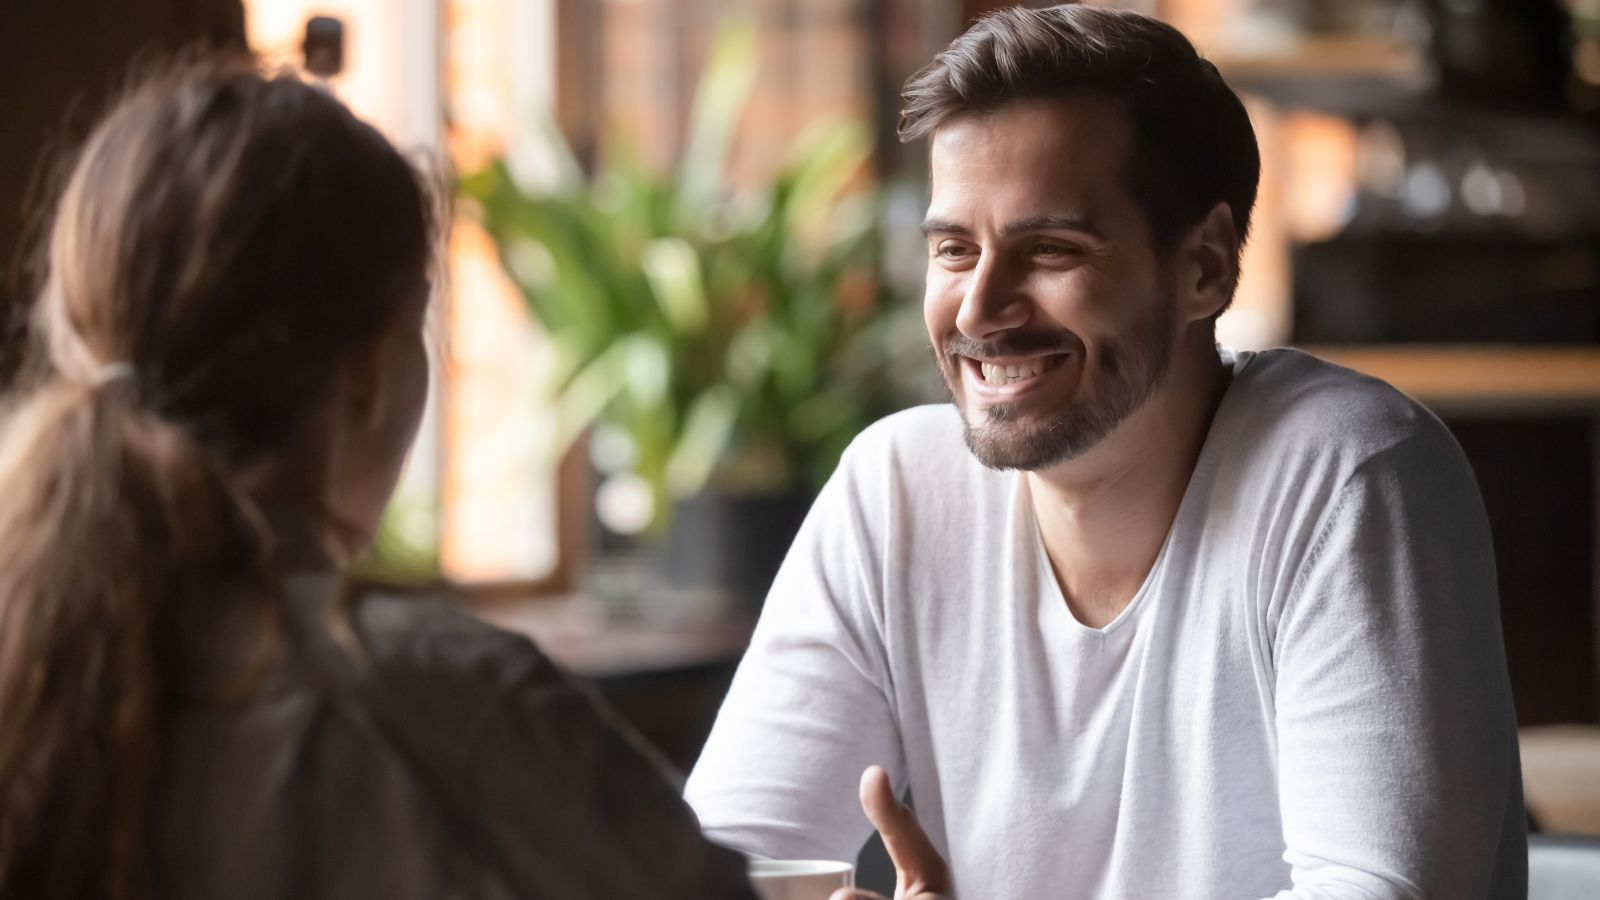 Business owner smiling during a conversation with their accountant